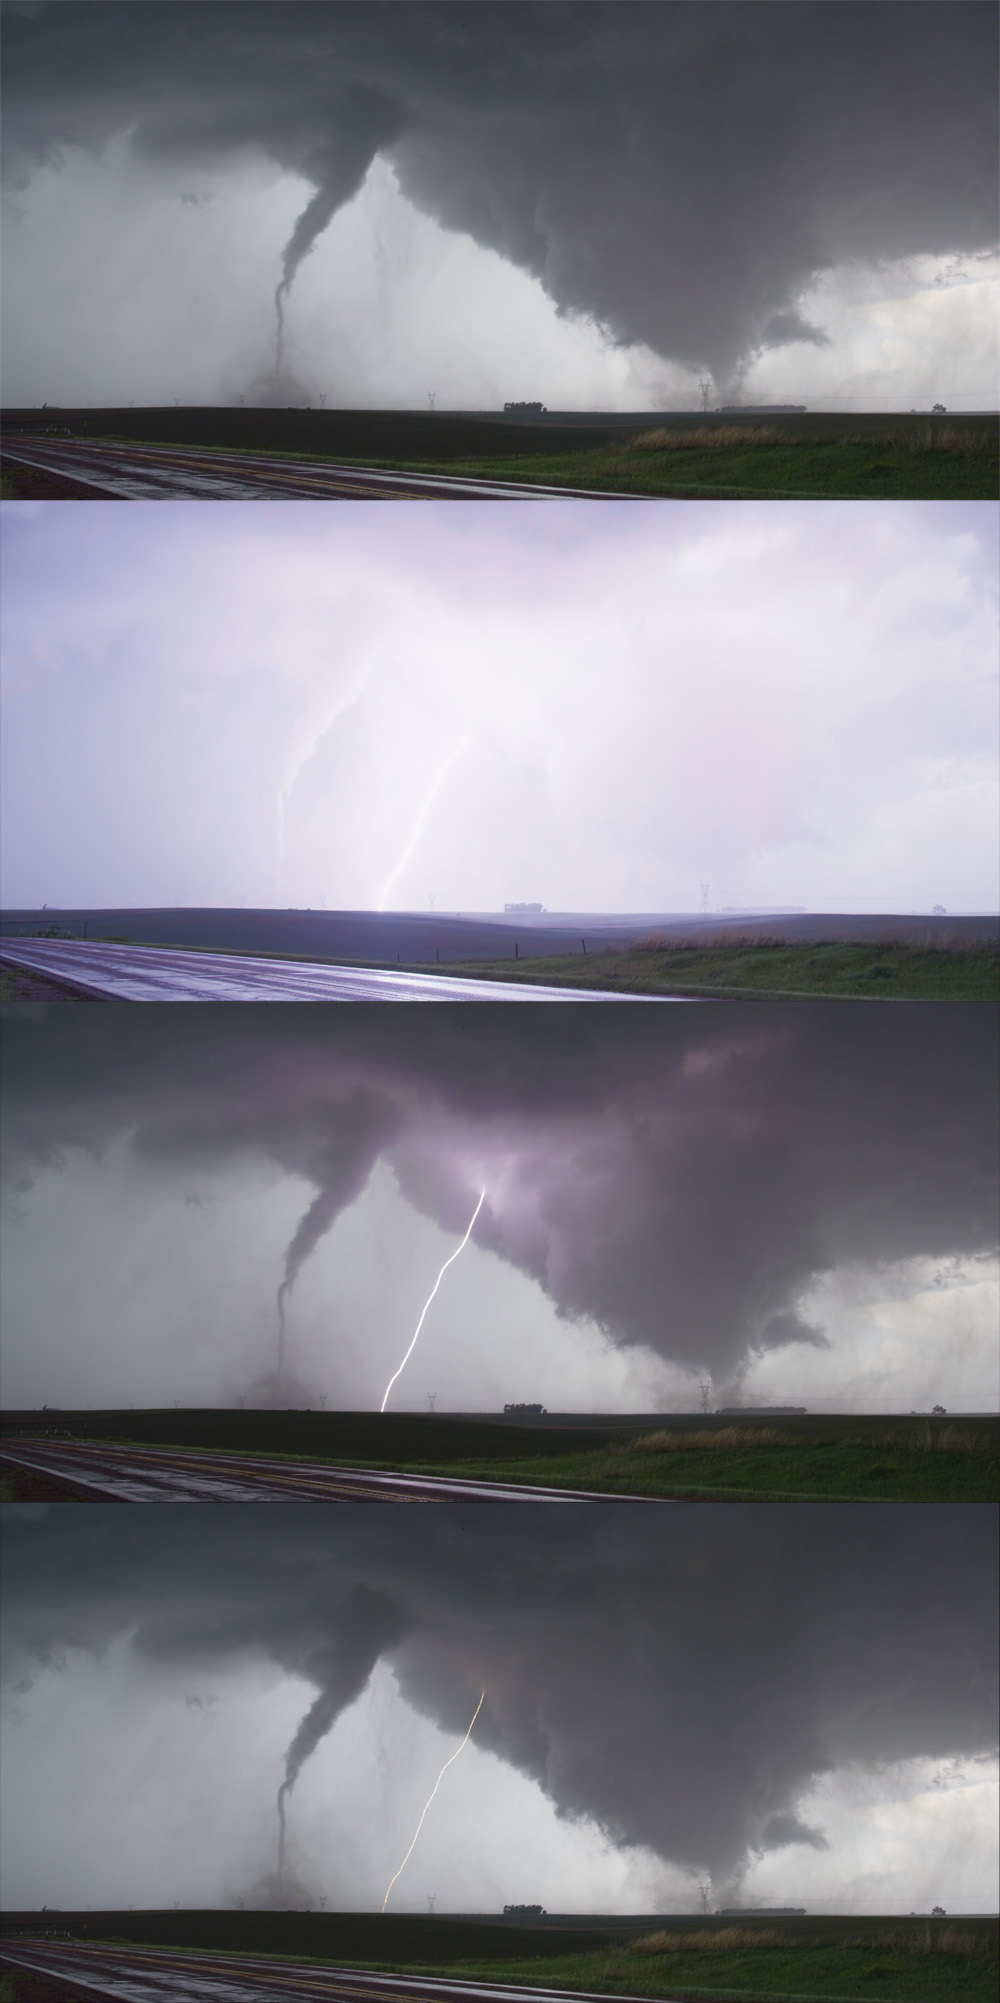 These images show the positive lightning strike between the two tornadoes.